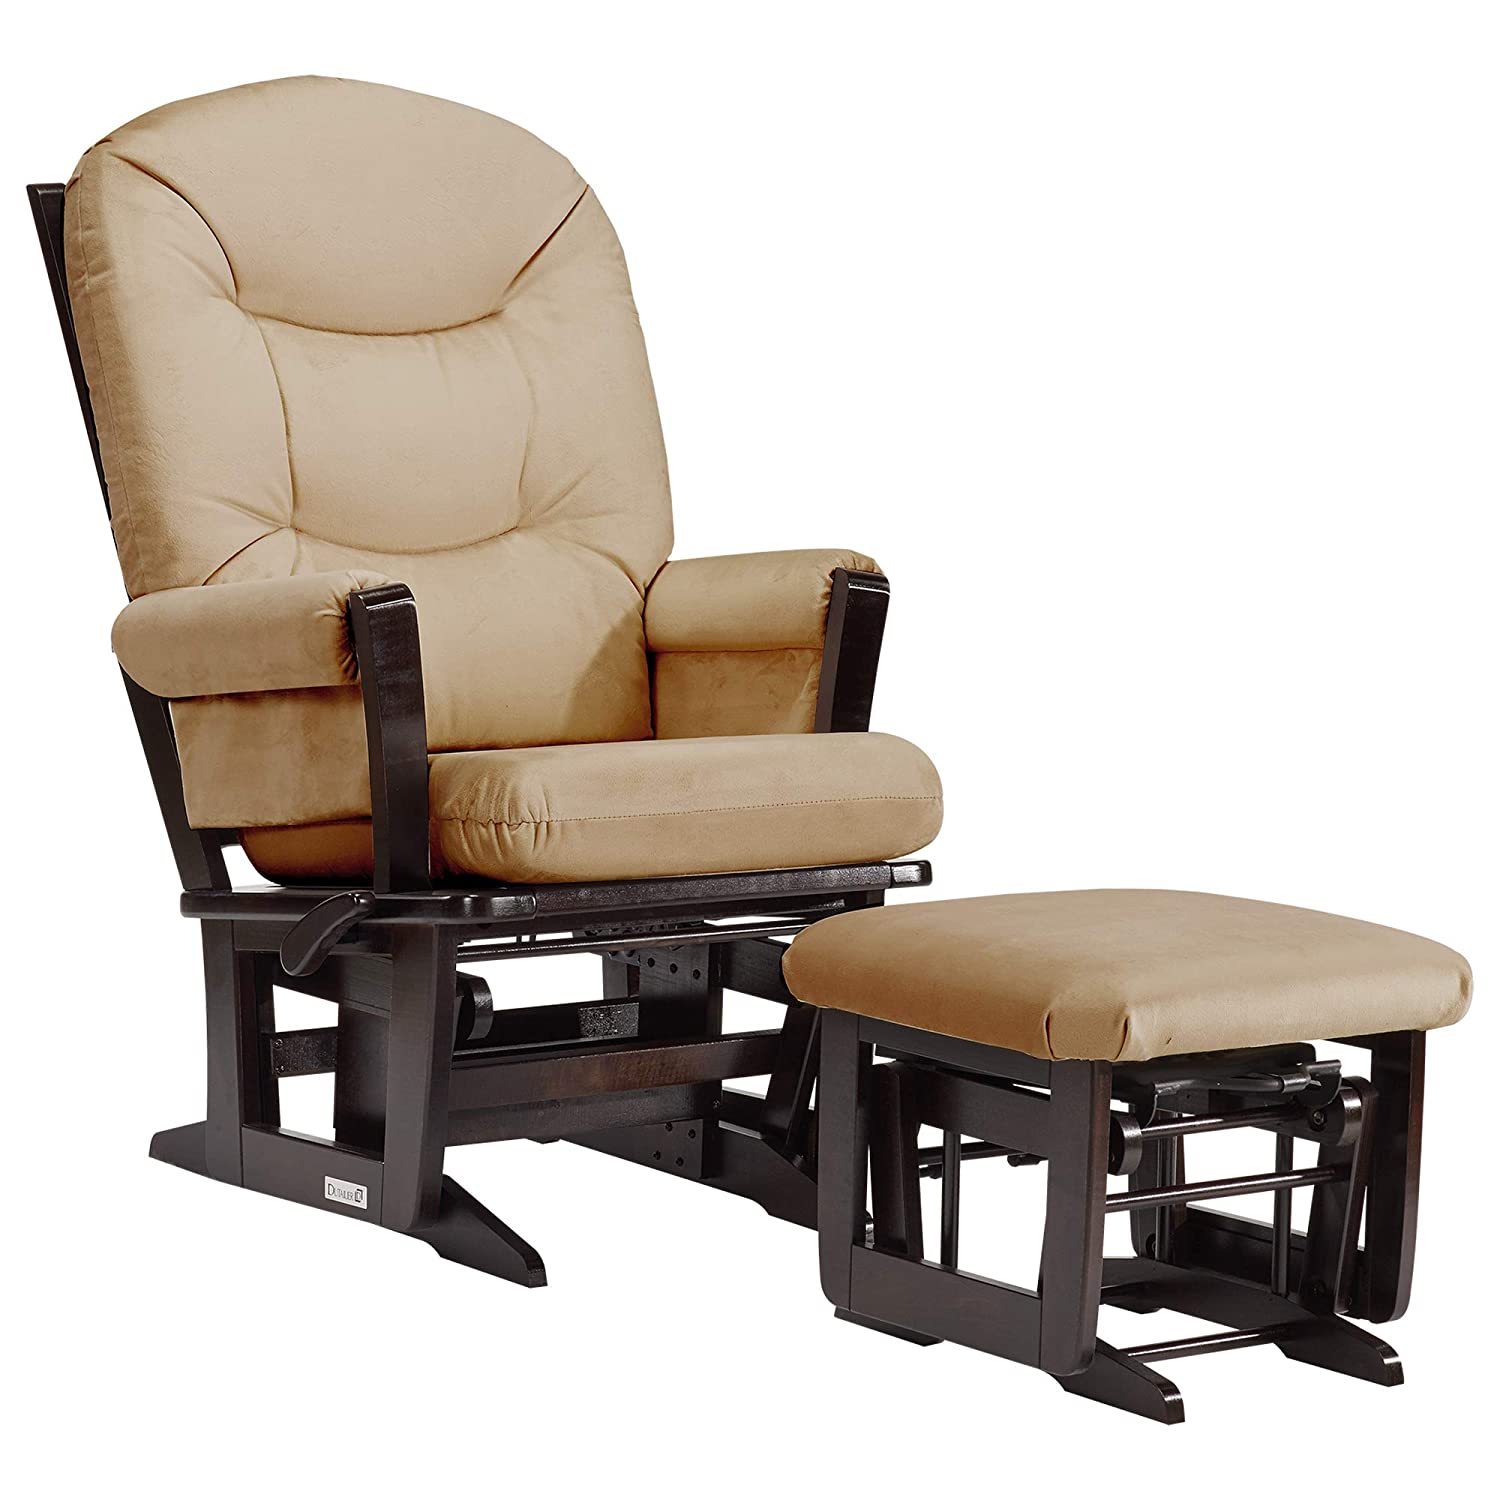 Dutailier MODERN 0404 Glider Multiposition-lock Recline with Nursing Ottoman Included